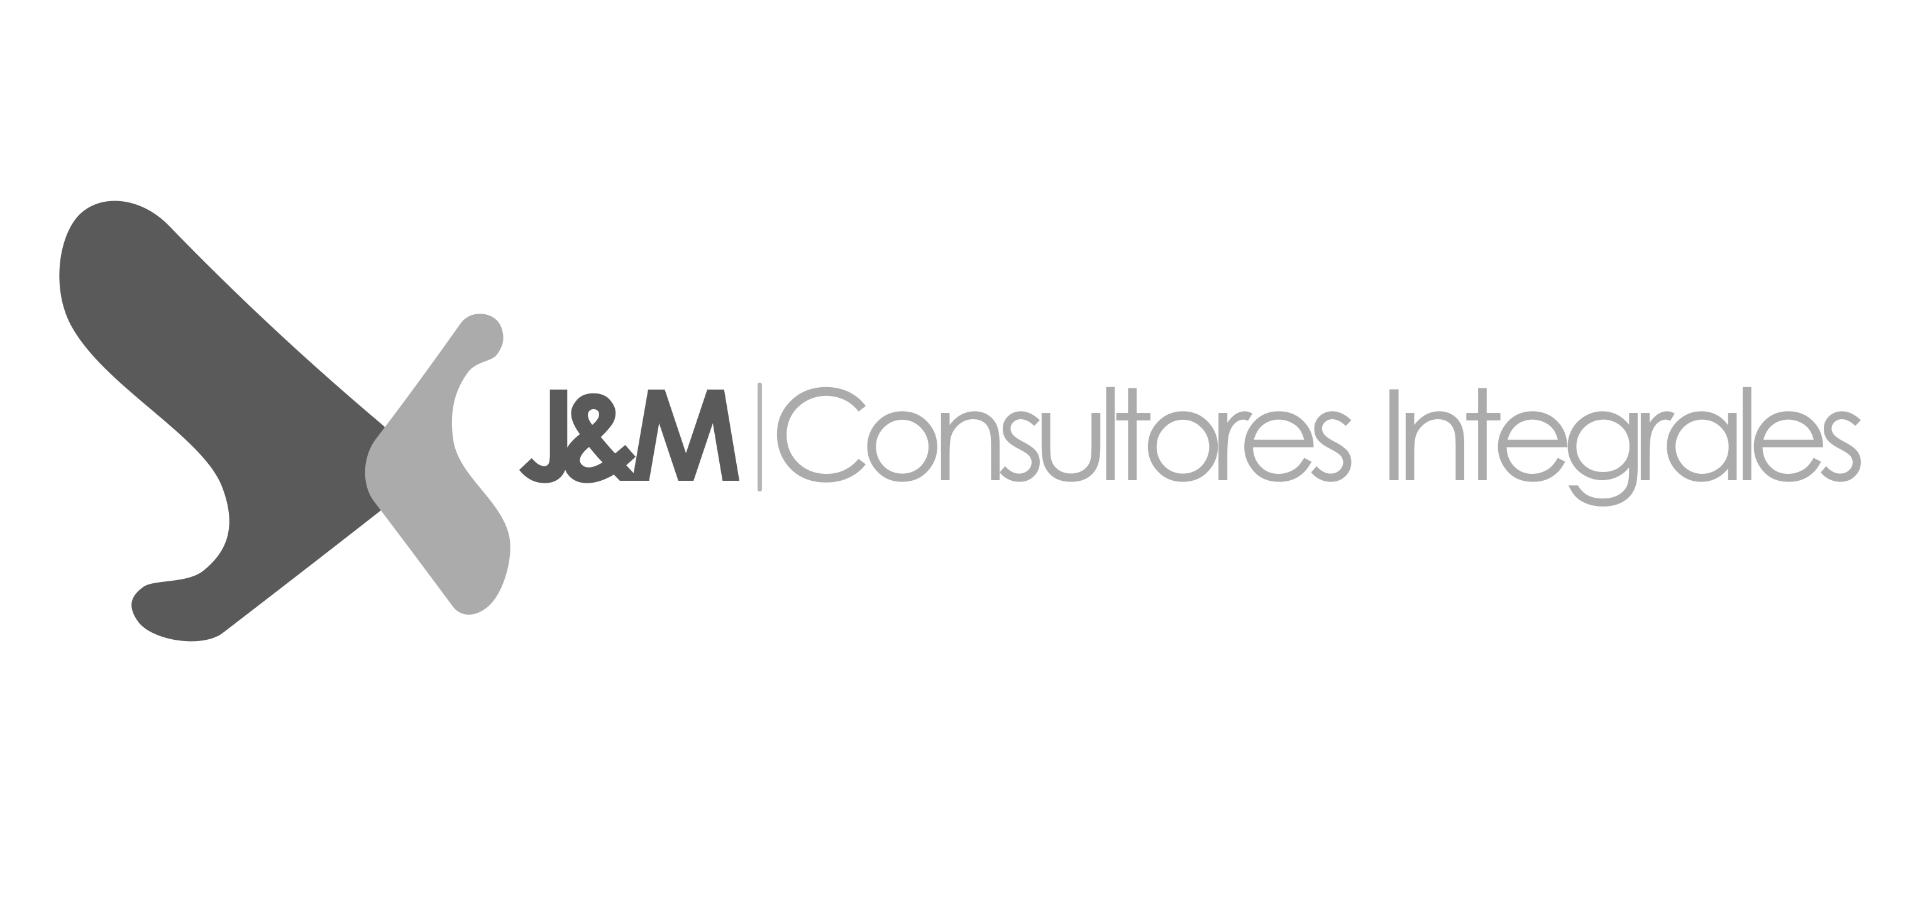 JyM Consultores Integrales_edited.png